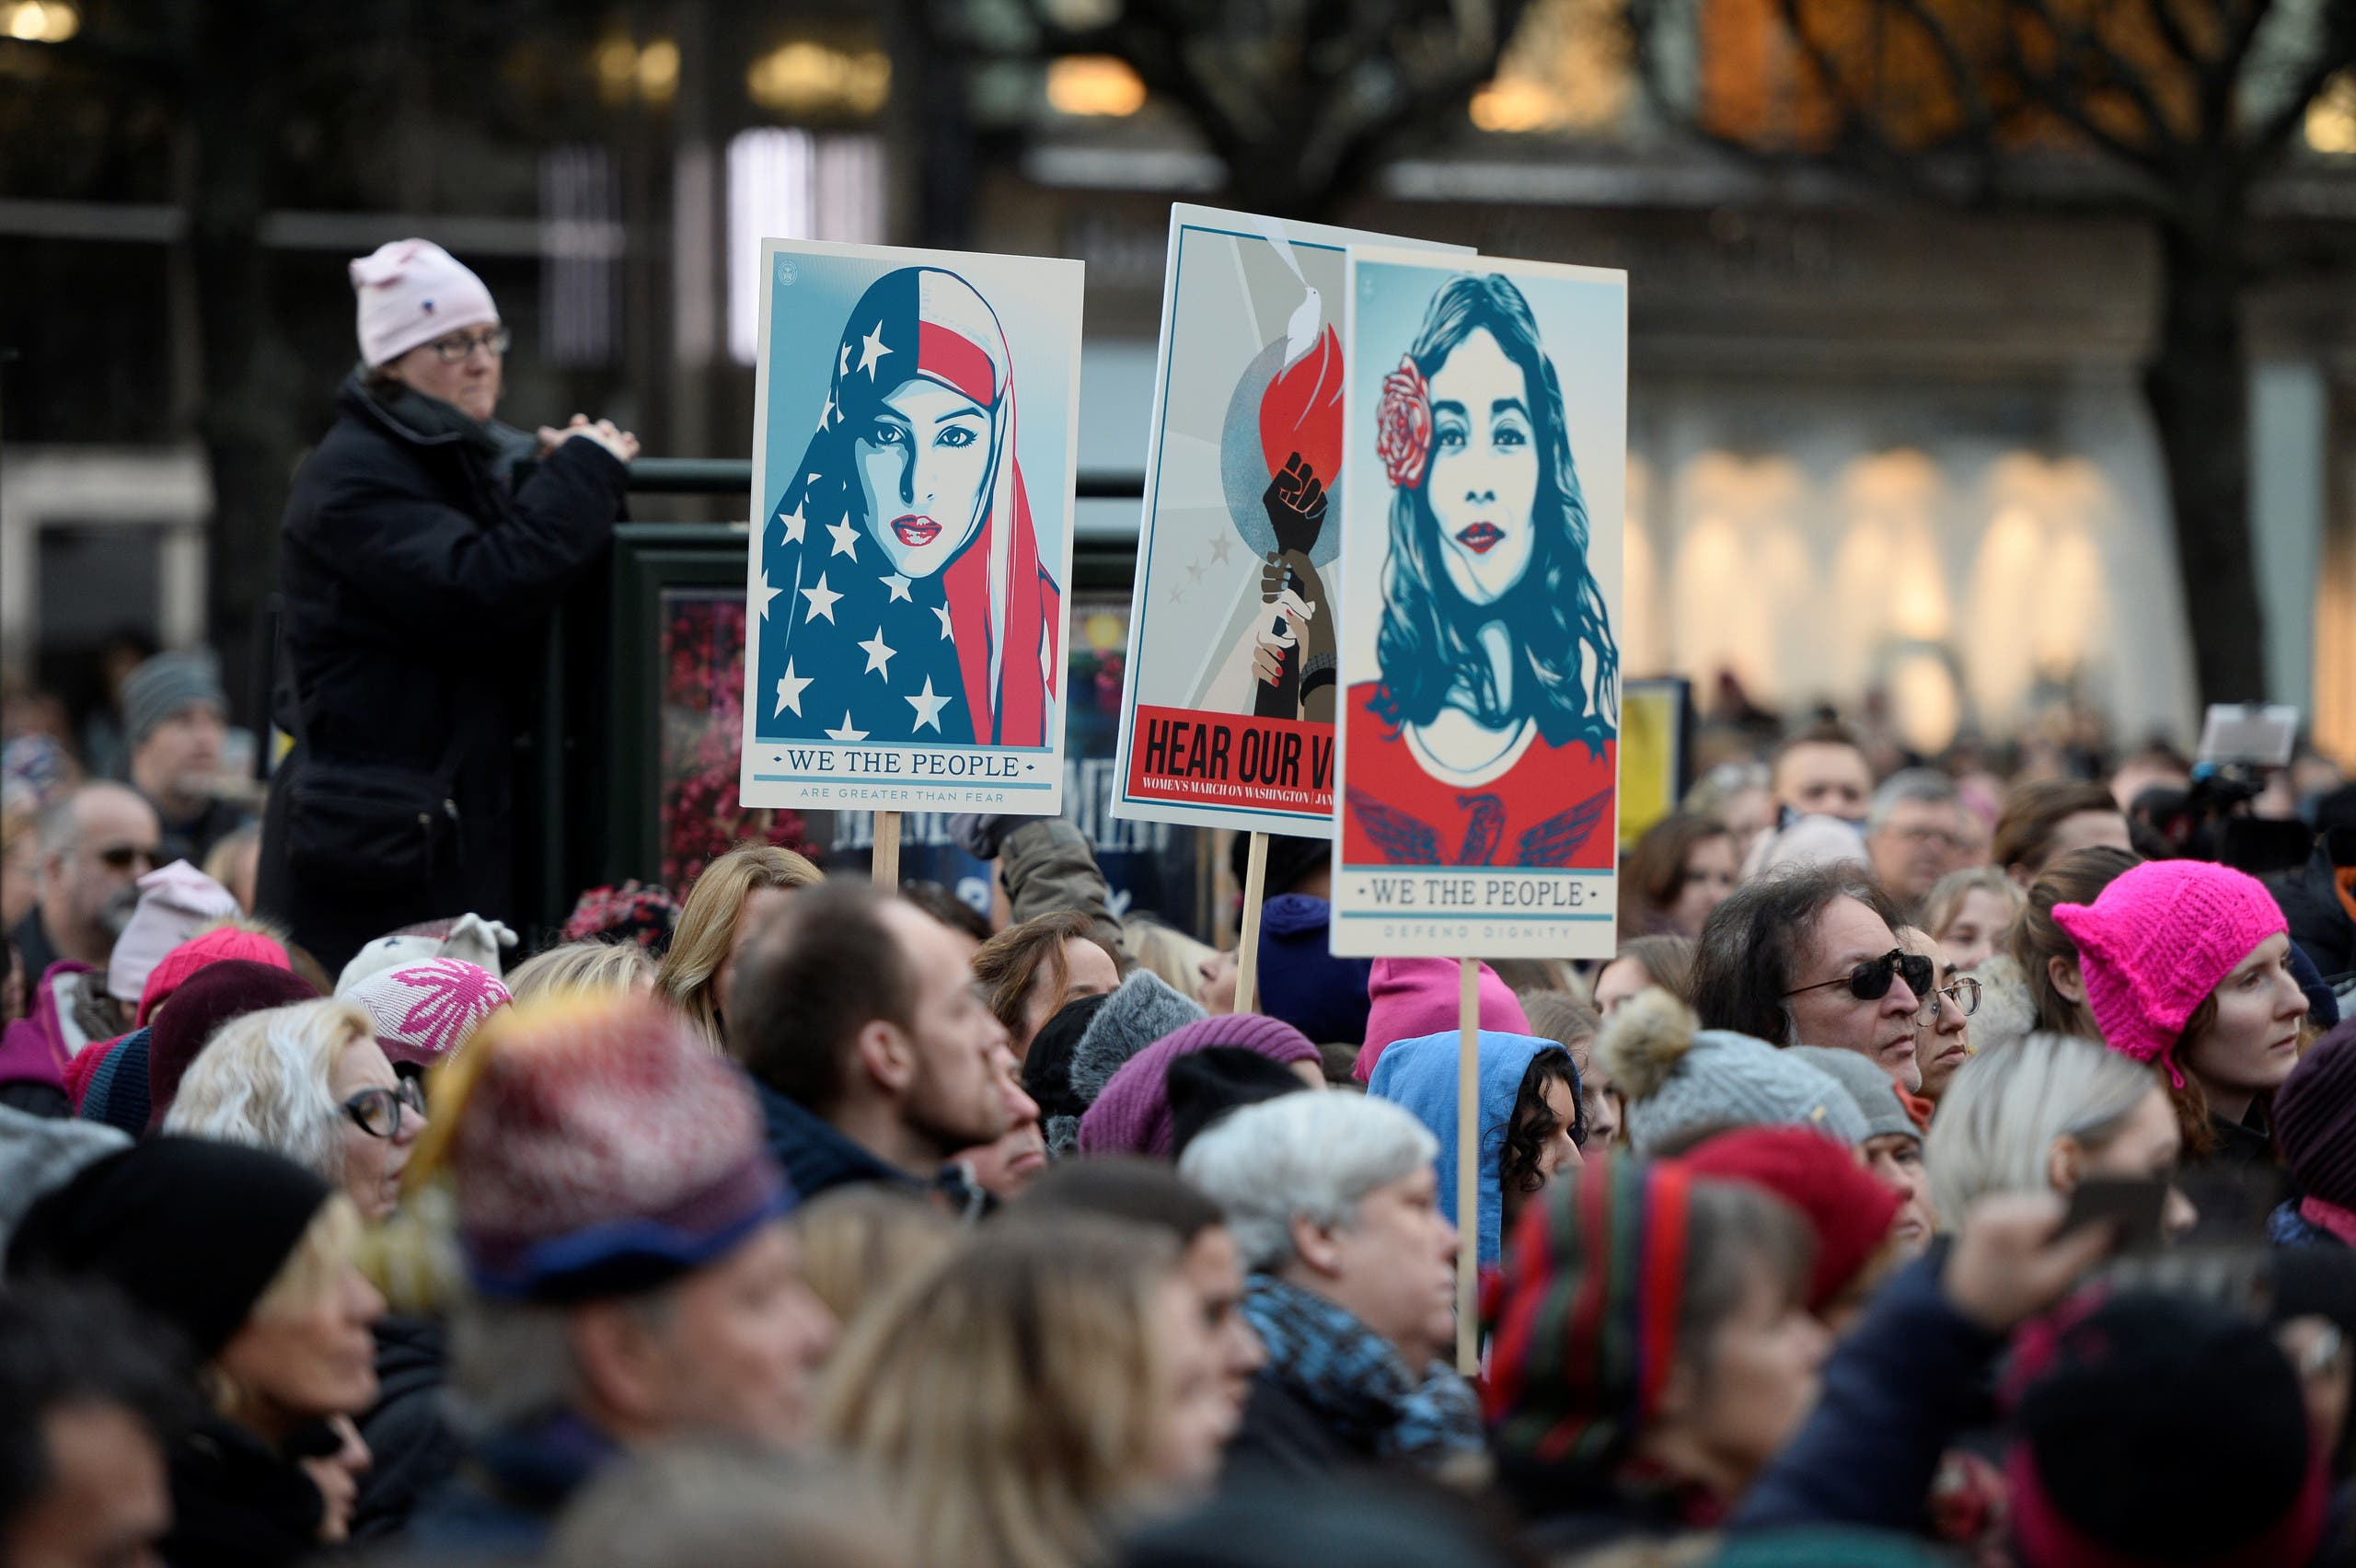 Protesters carrying banners and placards take part in a Women's March in Stockholm, Sweden, January 21, 2017. TT News Agency/Pontus Lundahl via REUTERS.?ATTENTION EDITORS - THIS IMAGE WAS PROVIDED BY A THIRD PARTY. FOR EDITORIAL USE ONLY. SWEDEN OUT. NO COMMERCIAL OR EDITORIAL SALES IN SWEDEN. NO COMMERCIAL SALES.